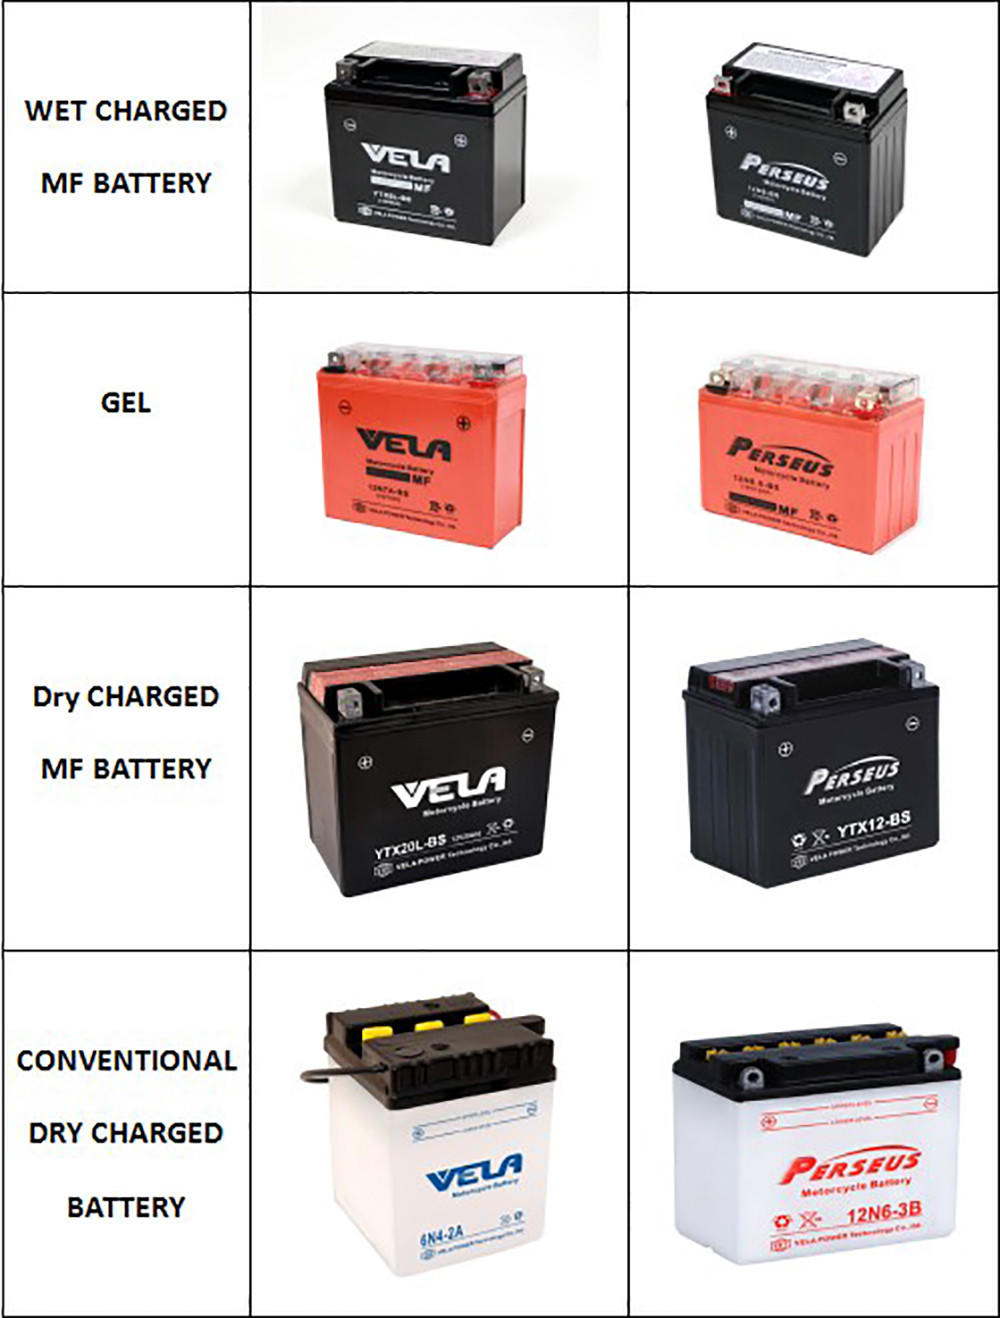 VELA longer cycle life maintenance free high performance motorcycle battery popular for motorcycle industry-2